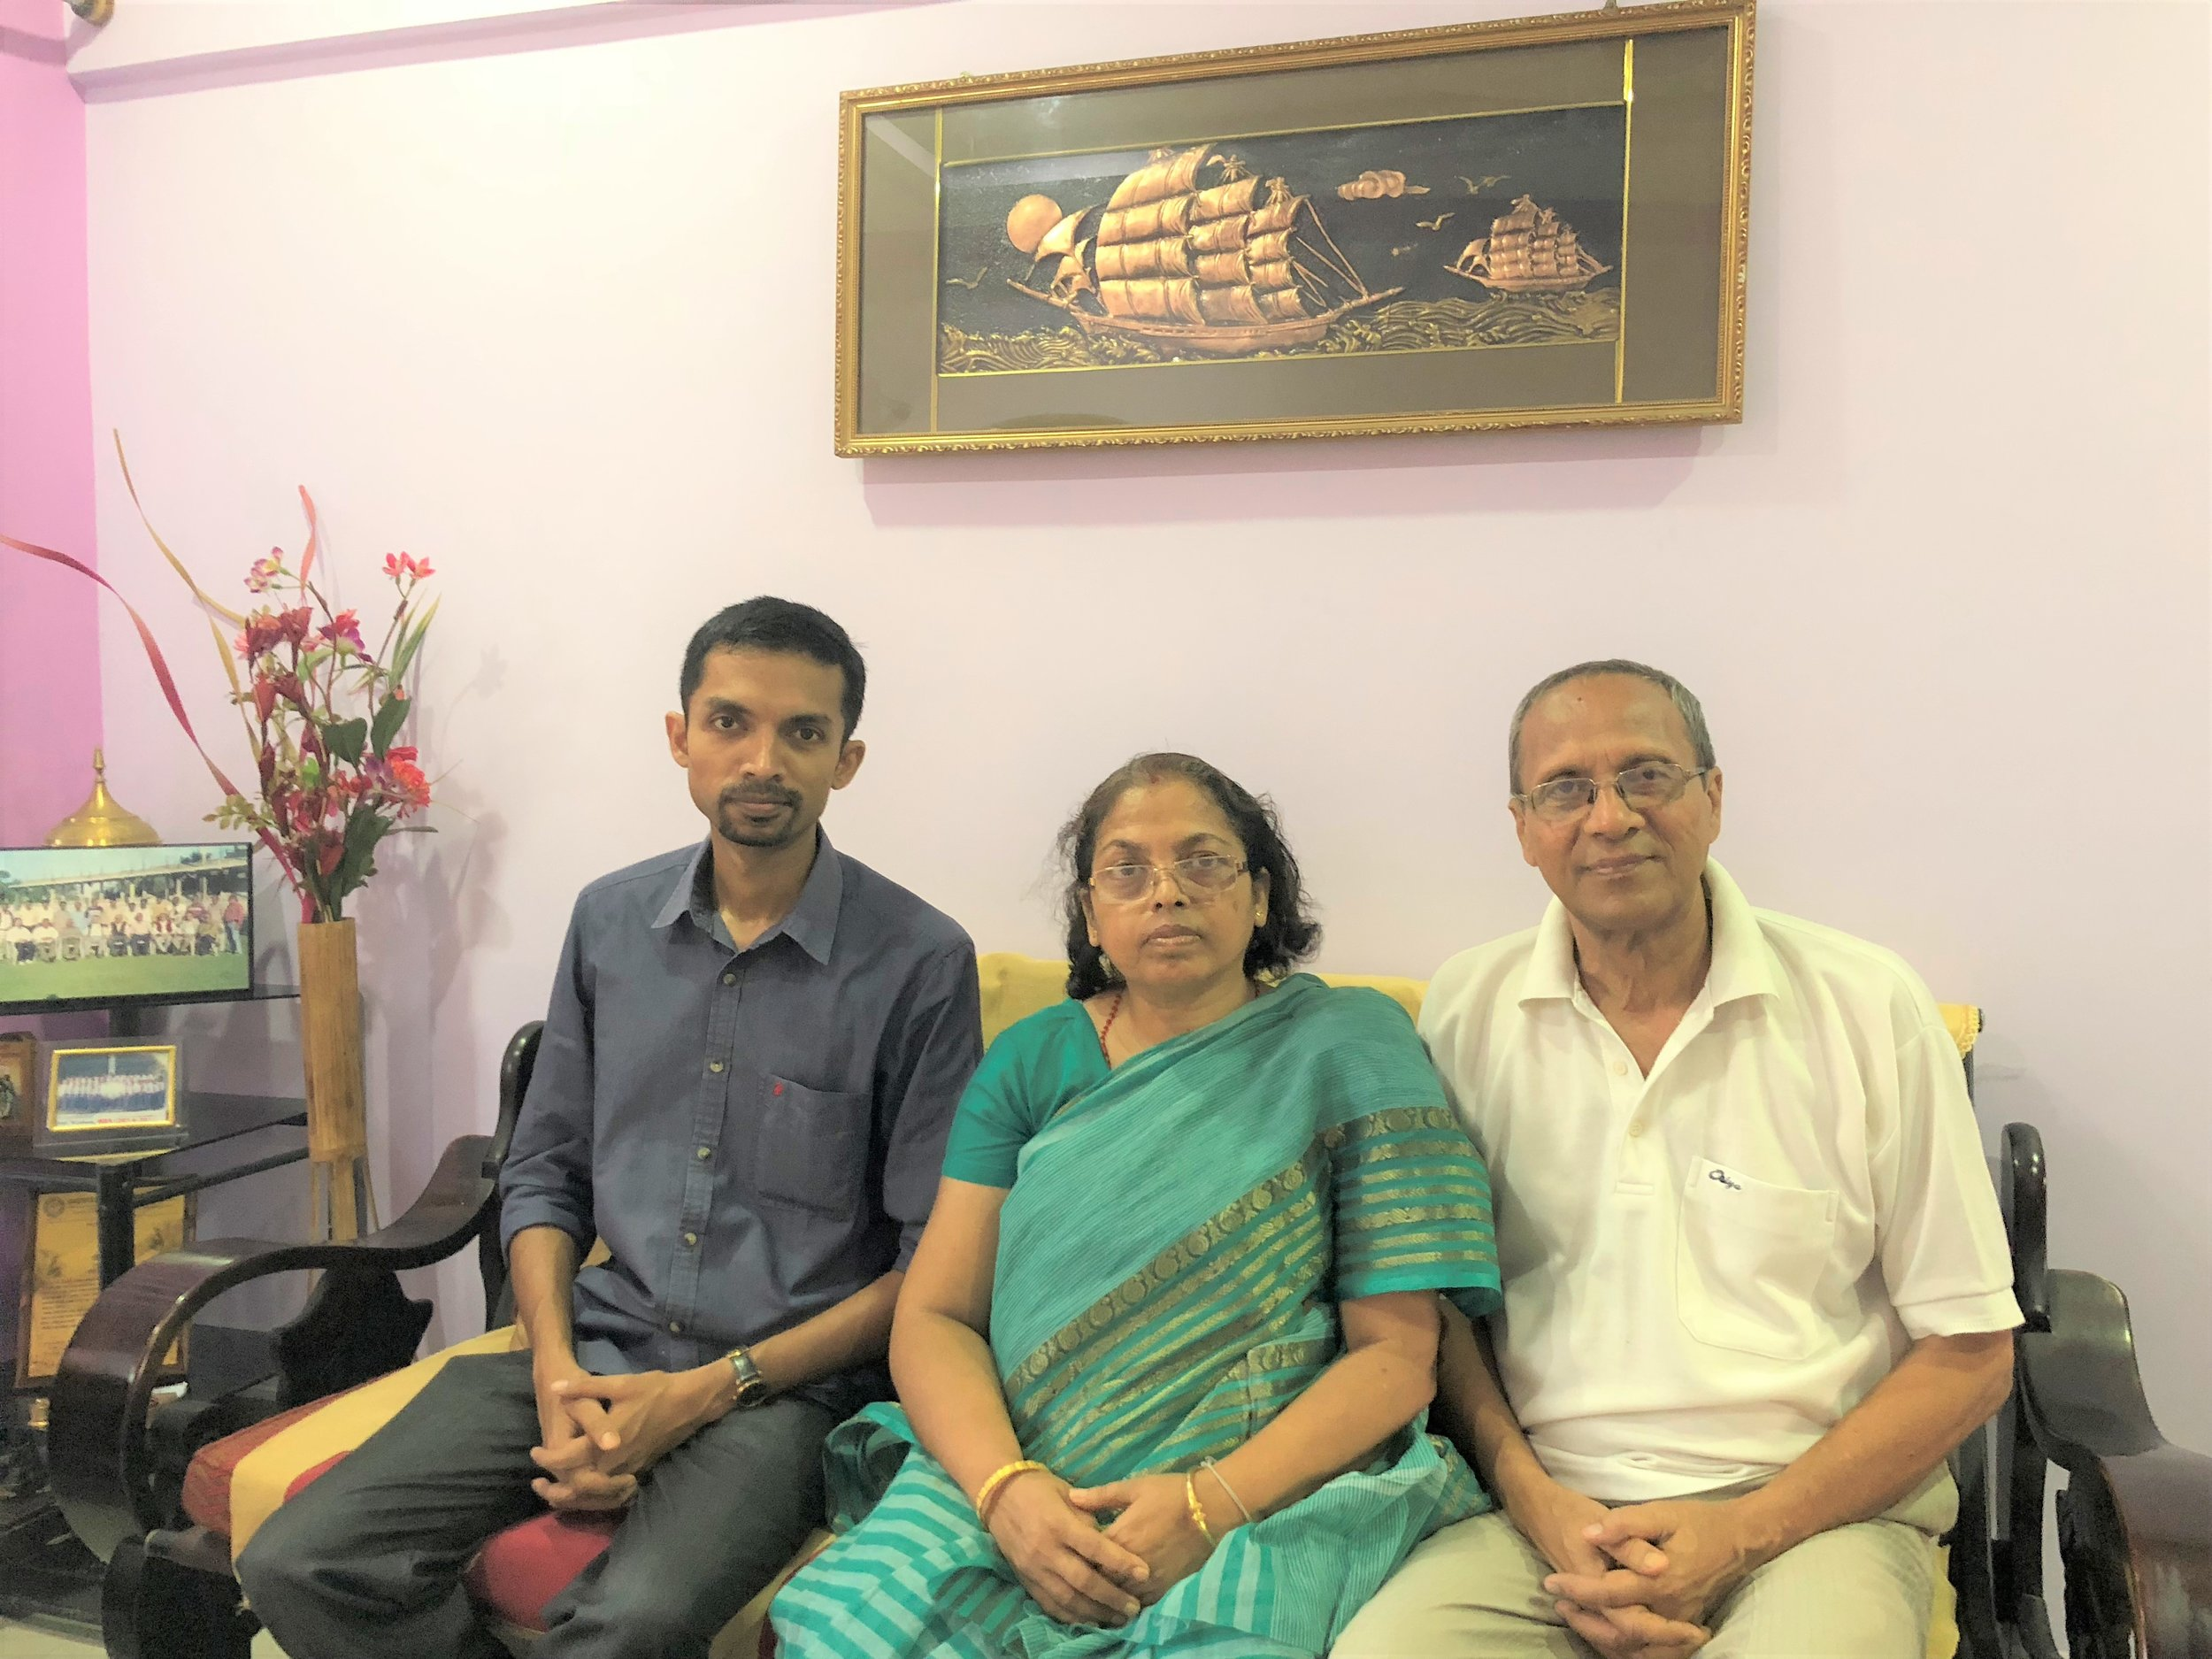 Mrs. Supti Sen, Stage II Breast Cancer Survivor with her husband, Mr. Bikash Shyam and Dr. Biswadeep Shyam. Mrs. Shyam was diagnosed in January 2016!